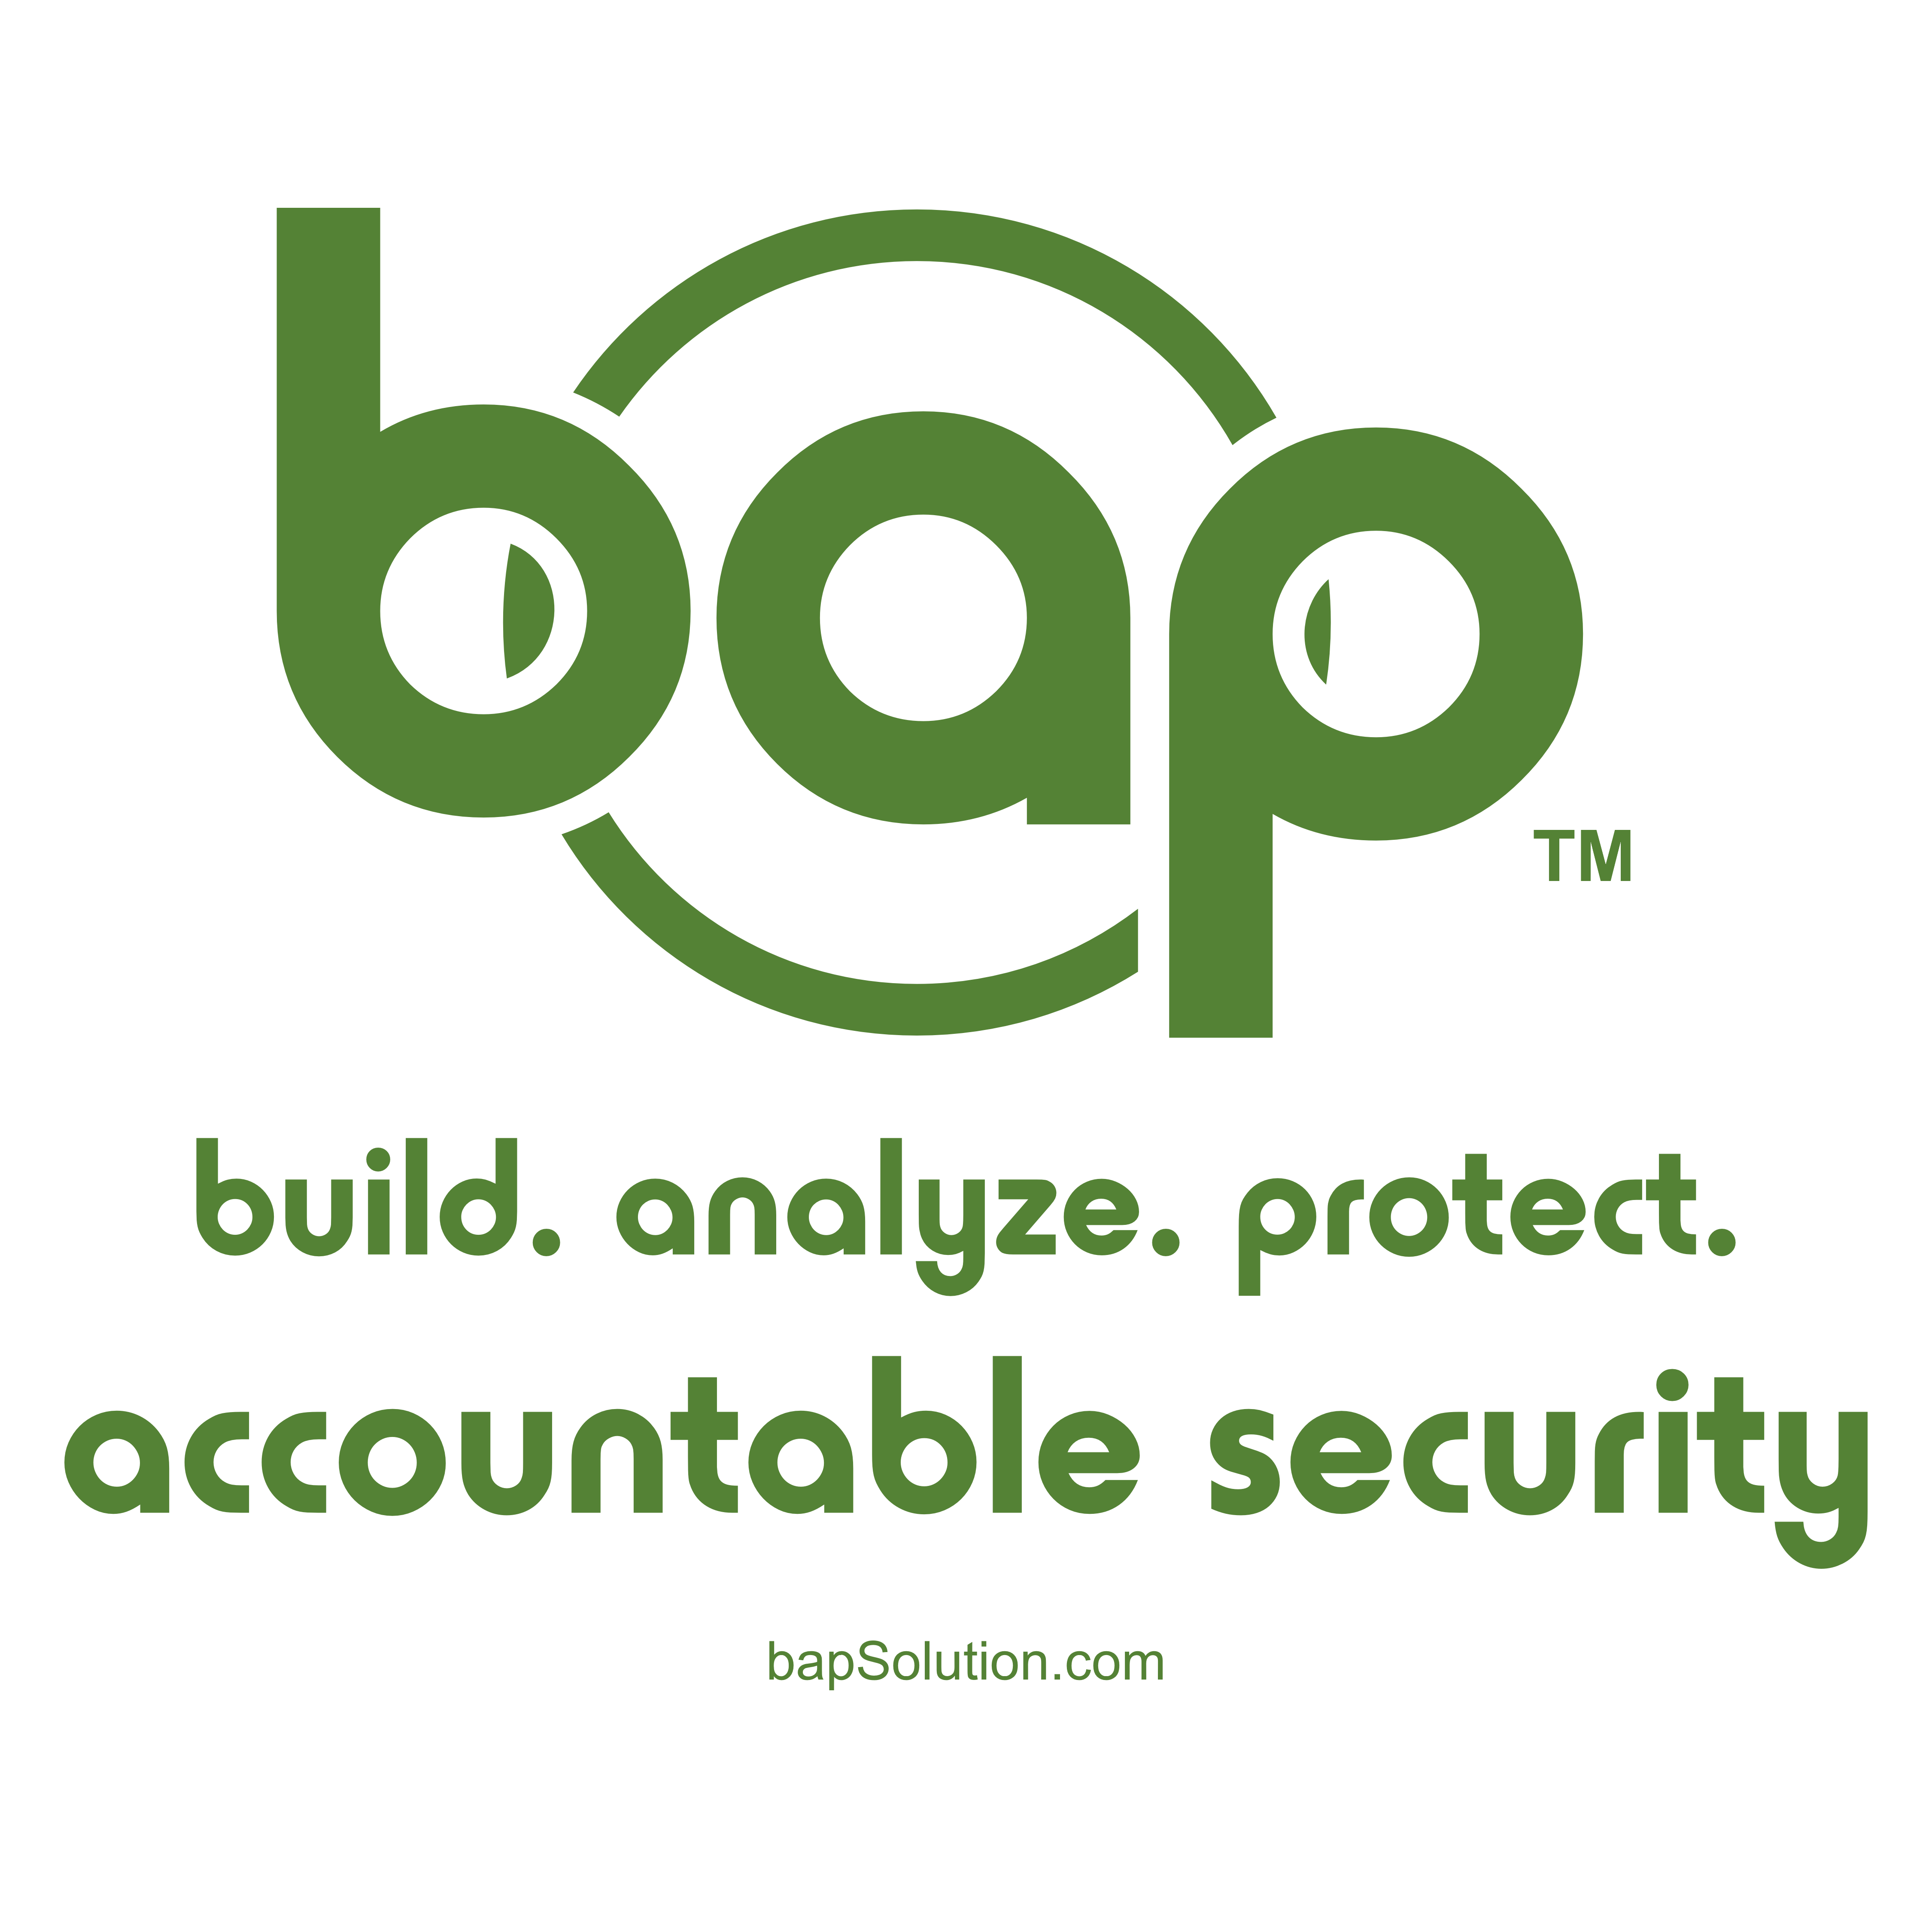 BAP Logo - Accountable Security